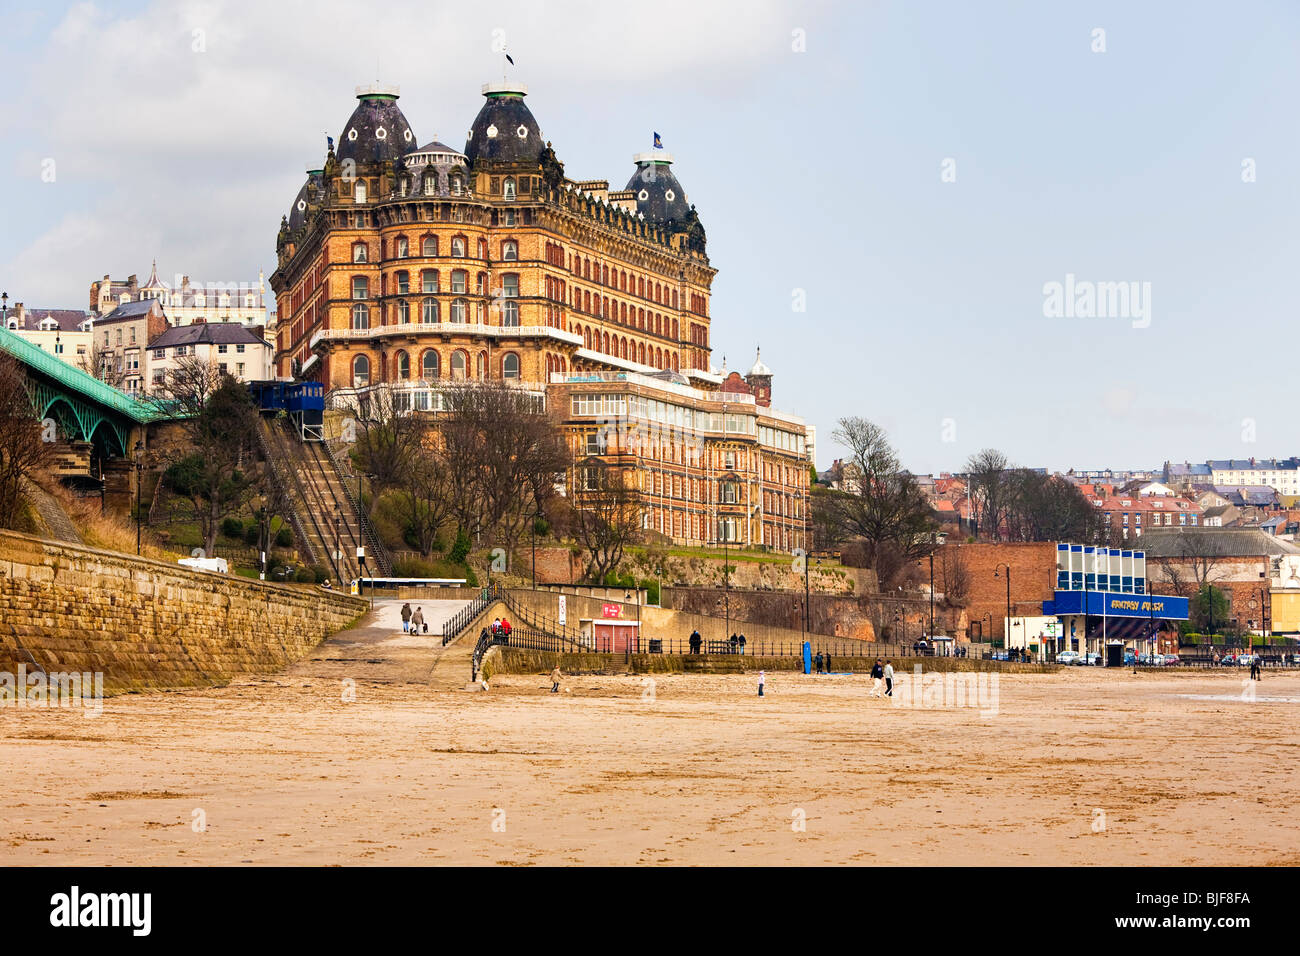 Grand Hotel and beach, Scarborough, England UK - Stock Image